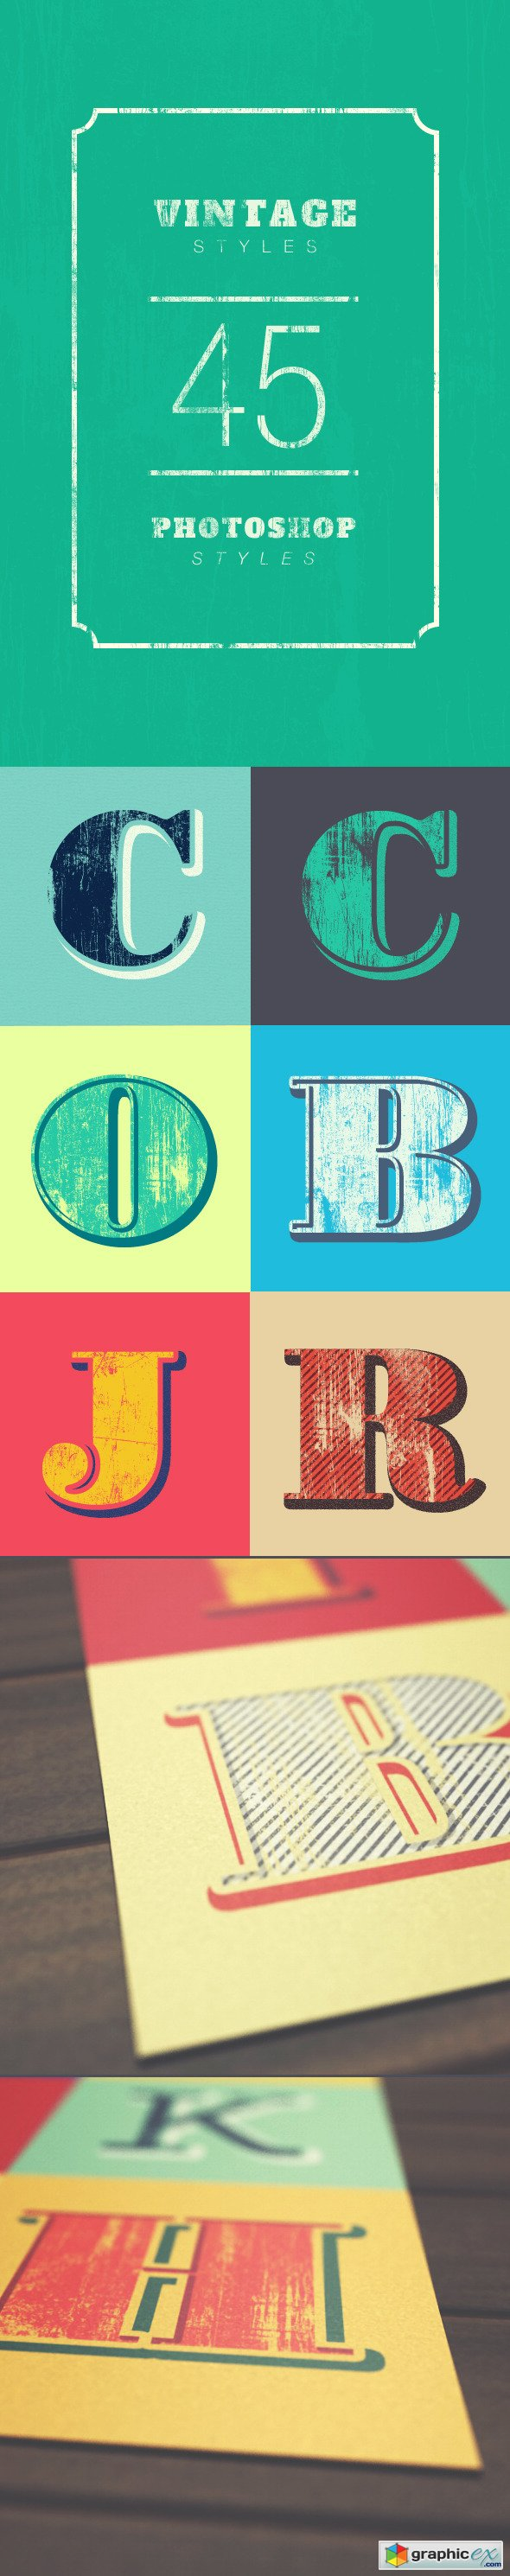 Vintage Styles » Free Download Vector Stock Image Photoshop Icon